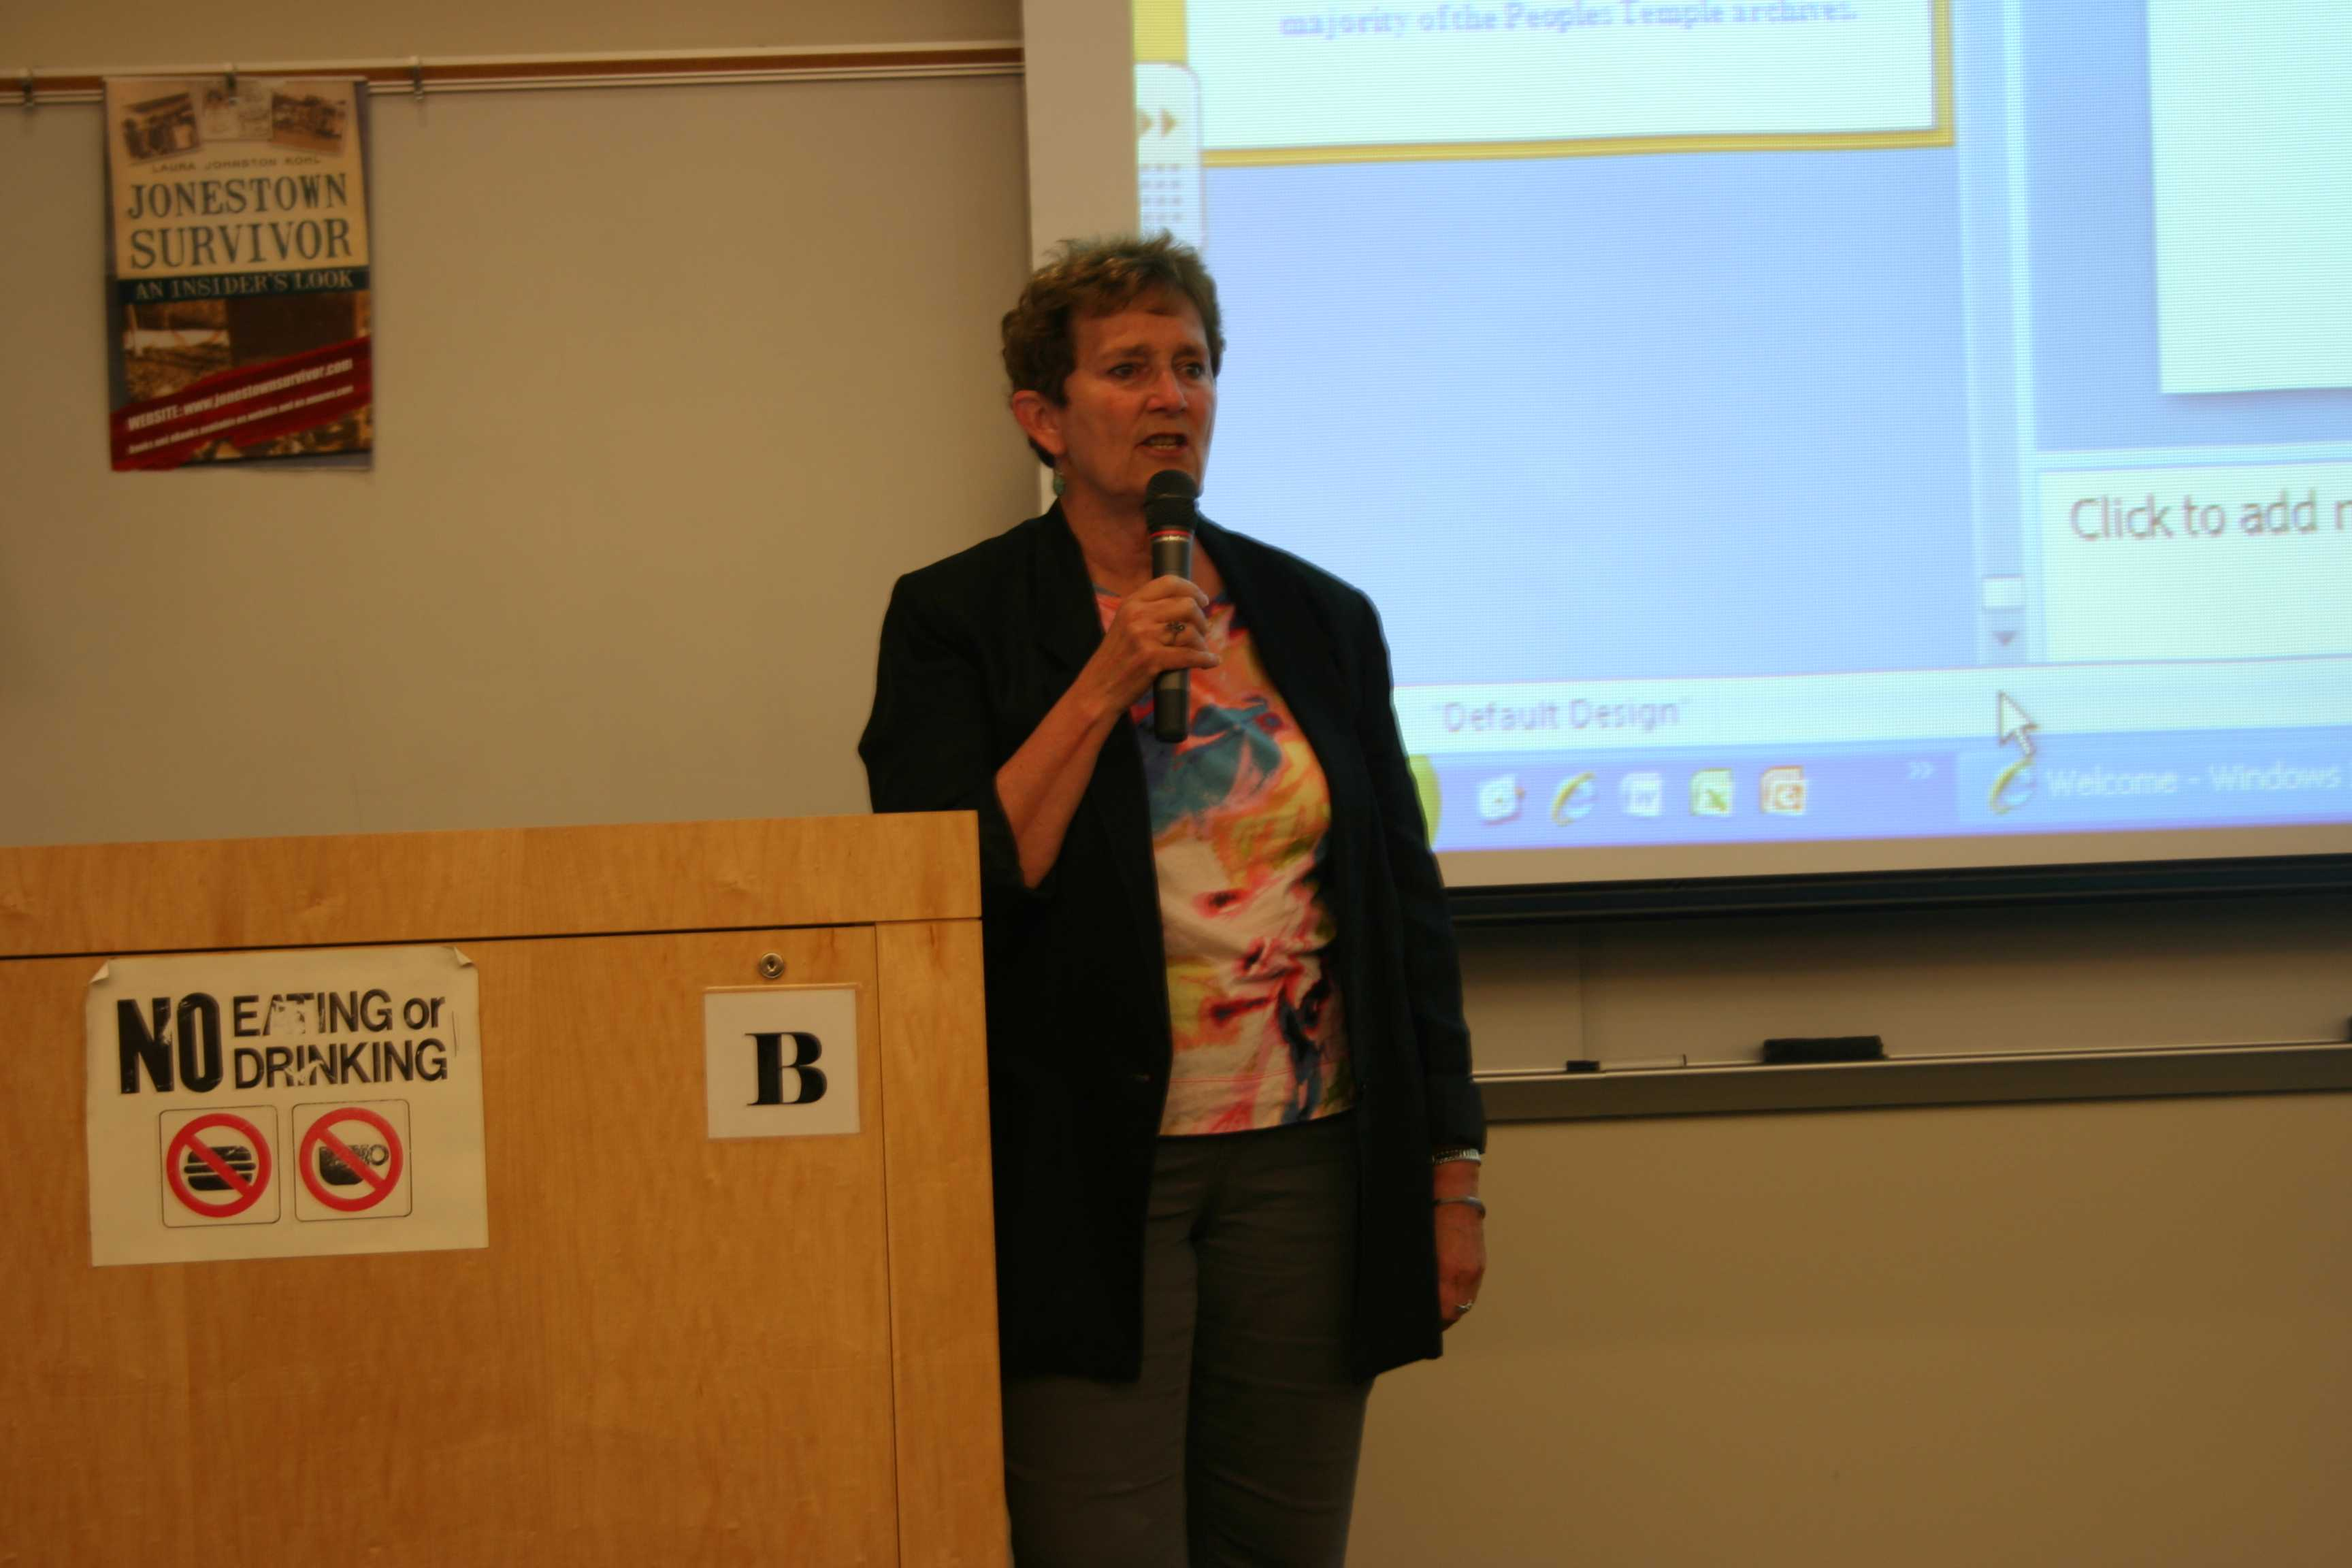 Jonestown survivor Laura Johnston Kohl spoke to an audience at City College on Oct. 29. Michelle Moran, City Times.